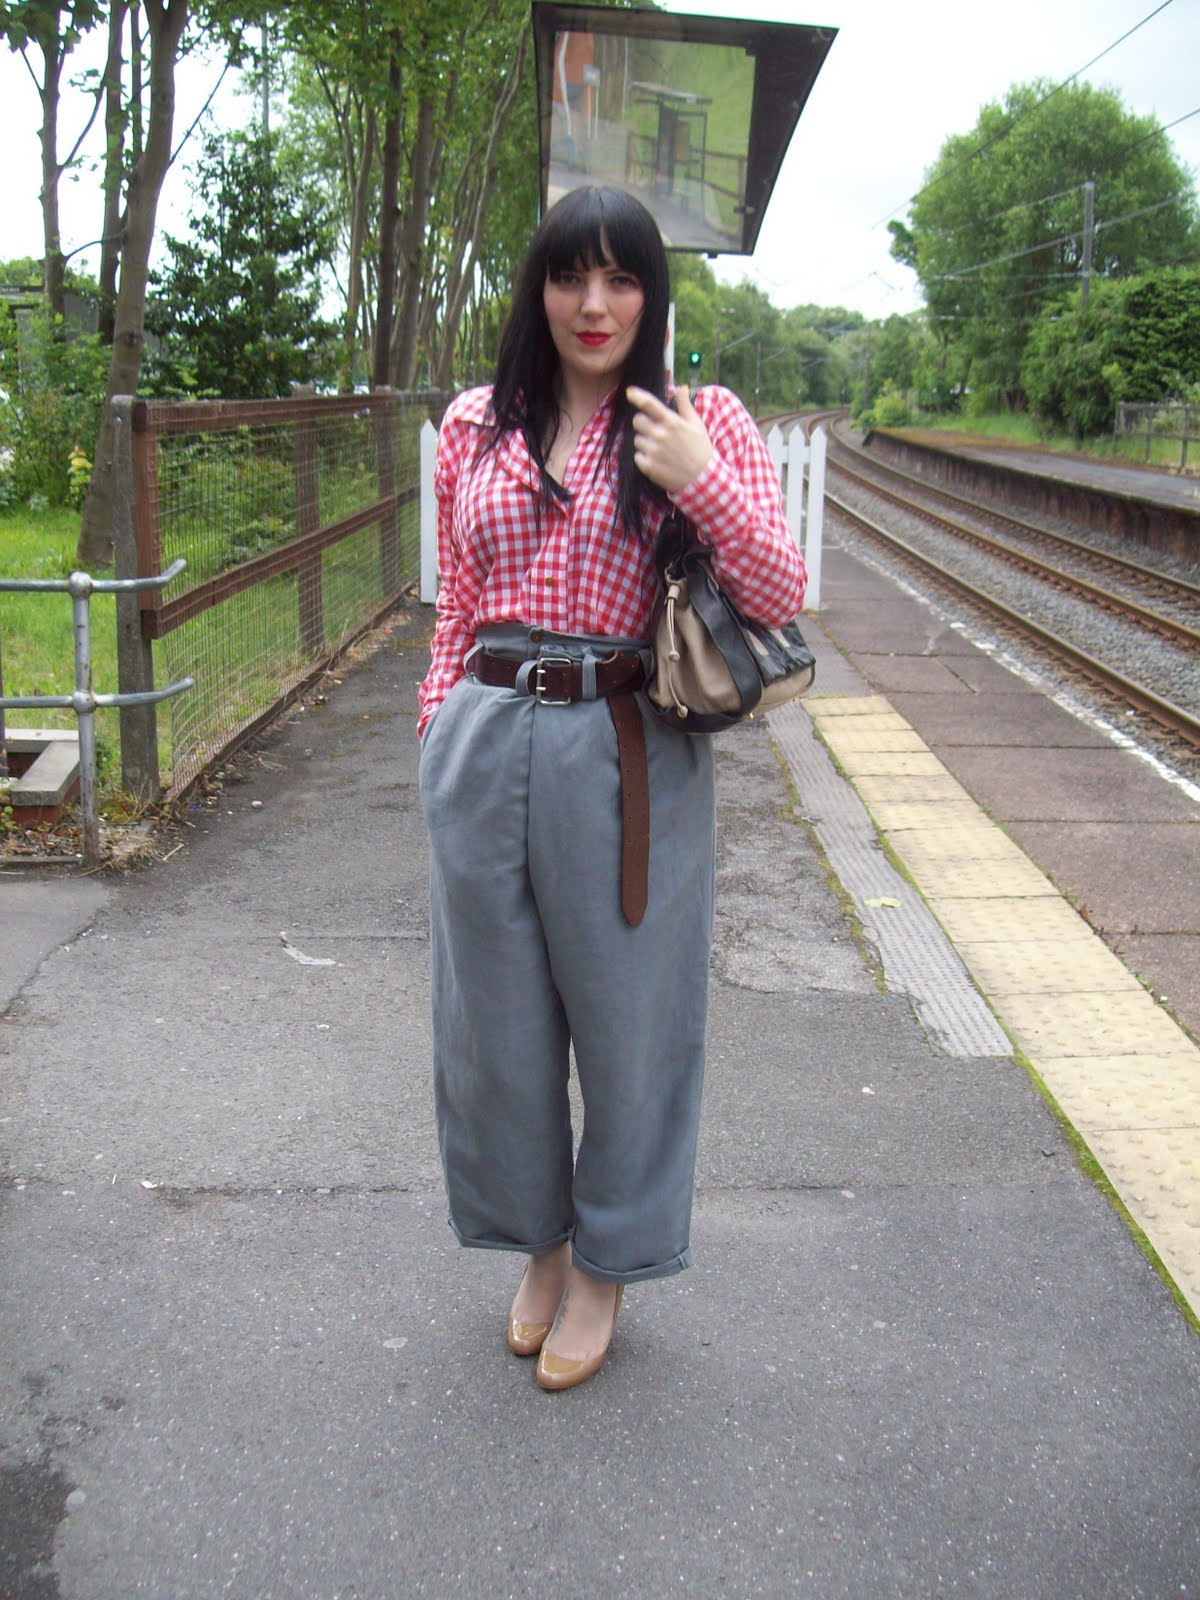 69c8fa335d (Wearing: Vivienne Westwood belt, Red label shirt and Man Label trousers,  Christian Louboutin shoes and Pierre Hardy bag – on loan, thanks mum)